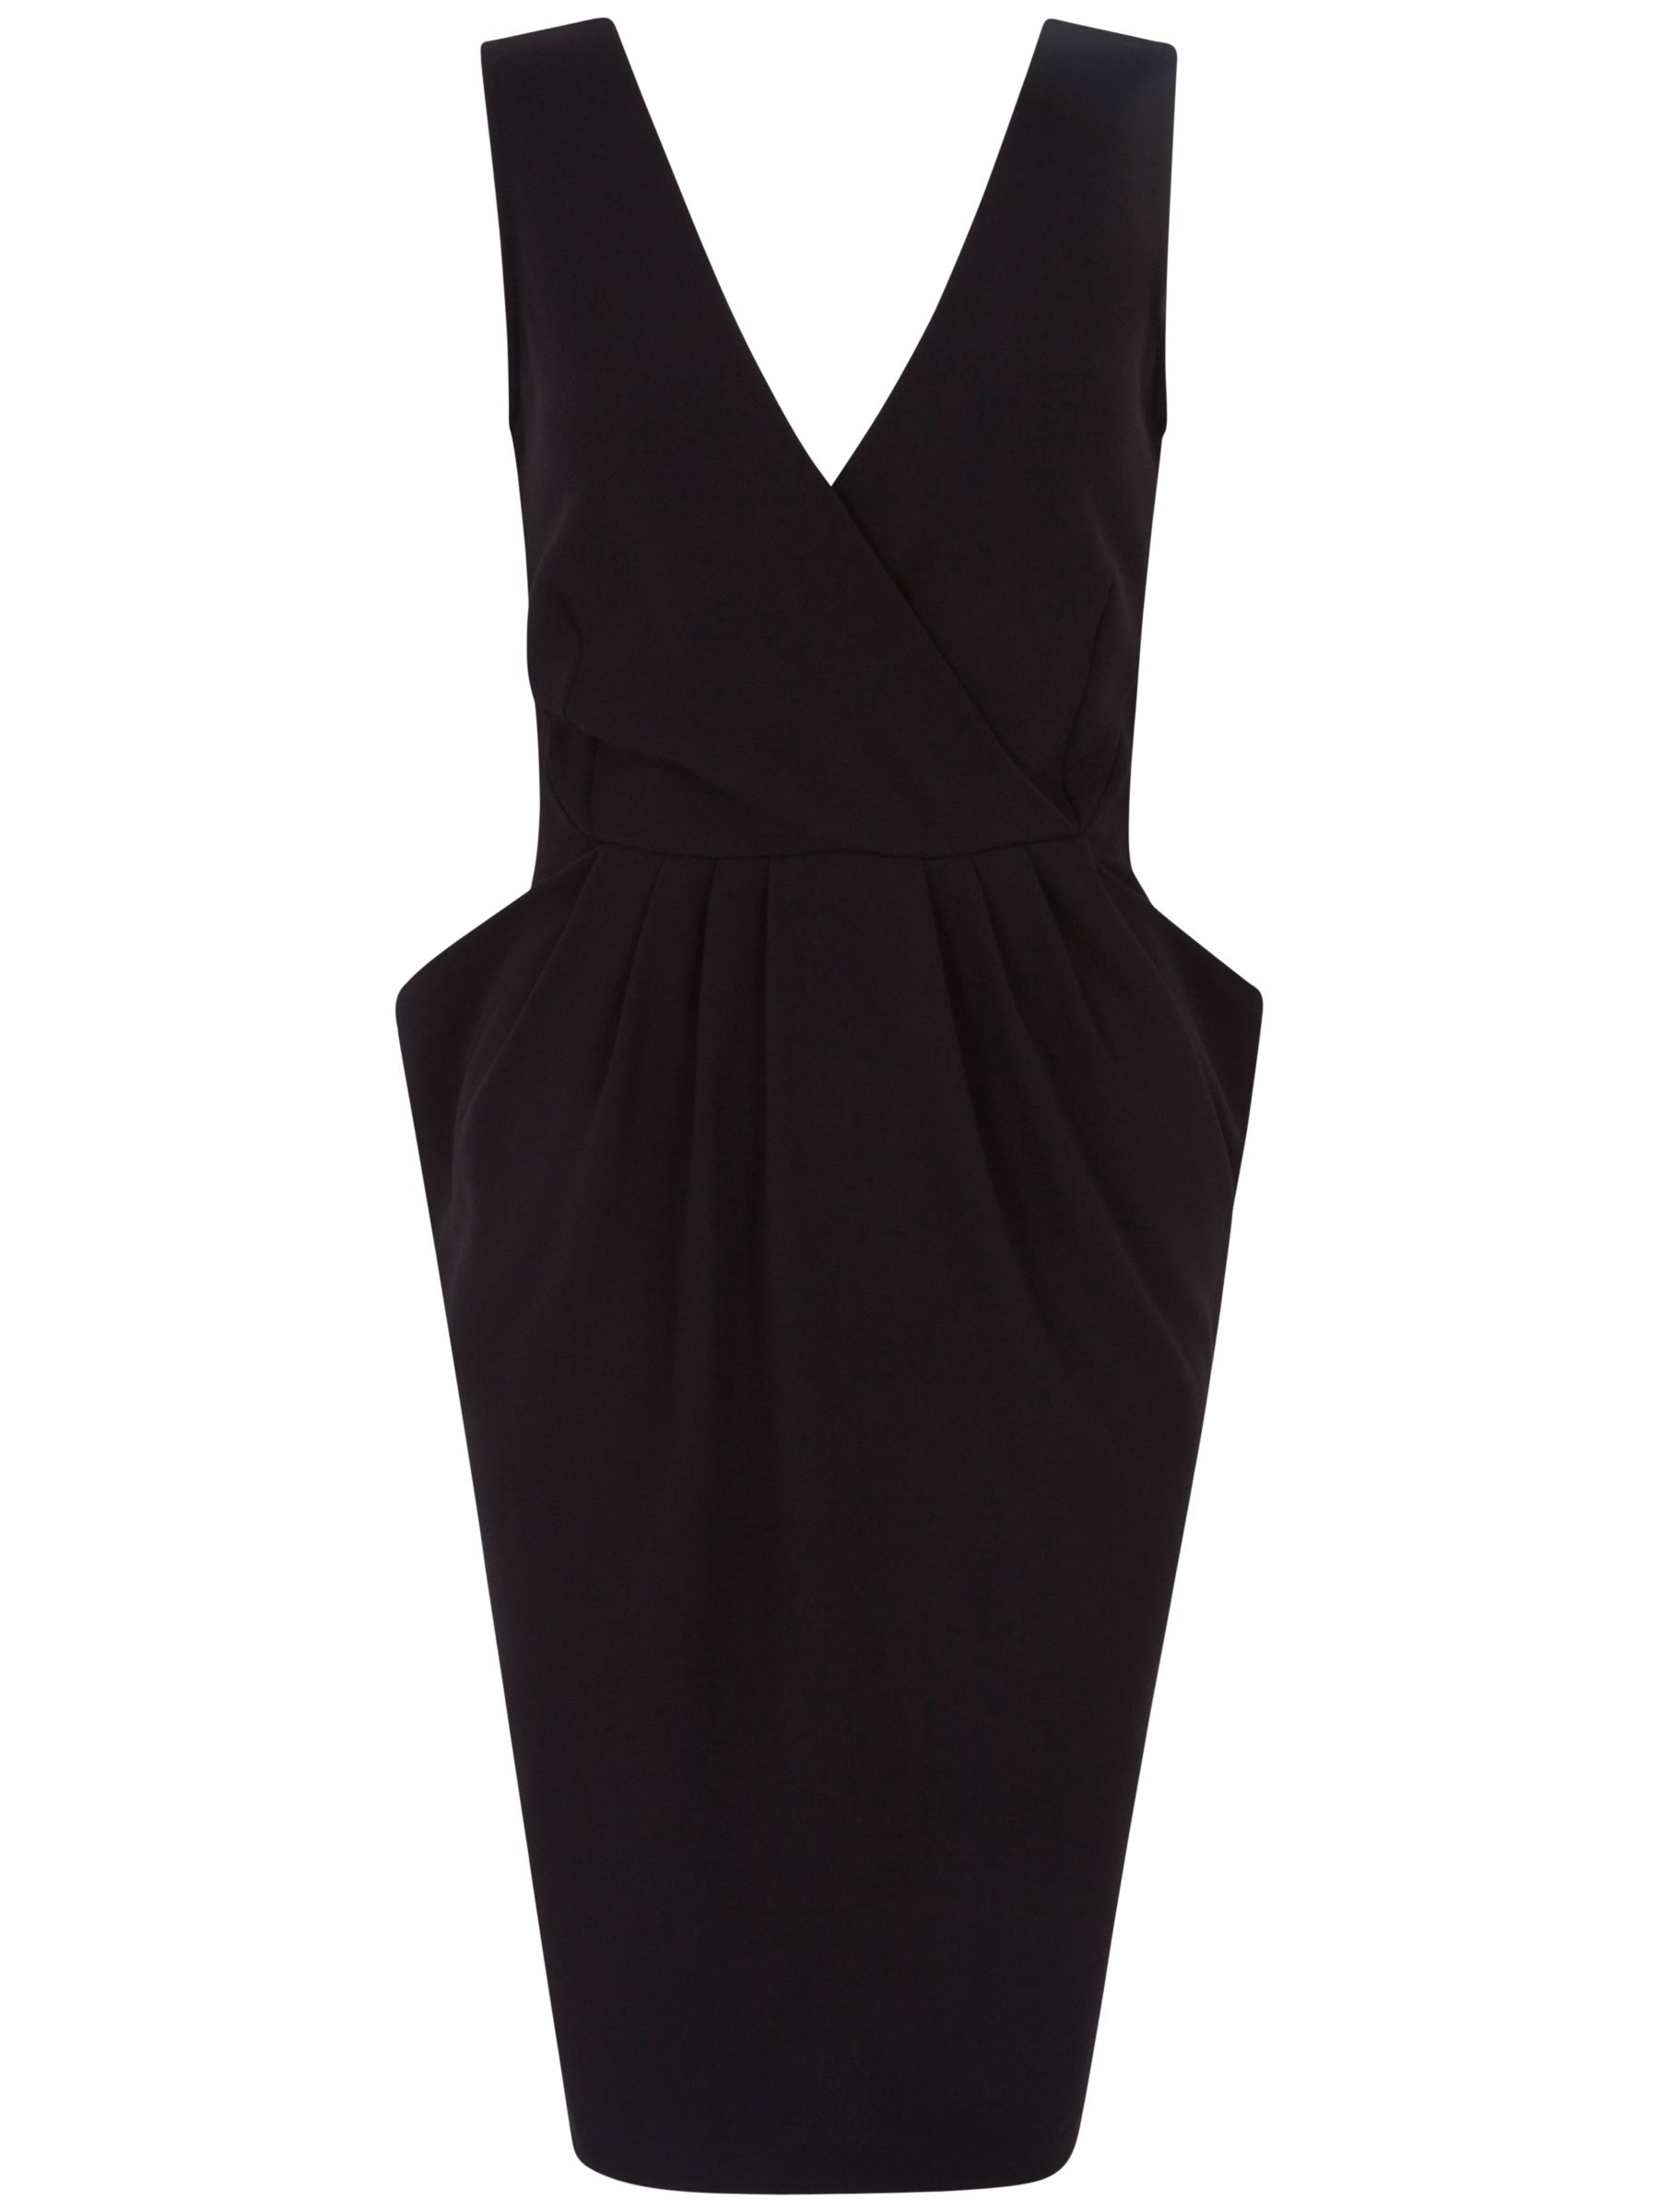 closet cross over big pocket dress black, closet, cross, big, pocket, dress, black, 16|10|14|12|8, women, womens dresses, party outfits, party dresses, 1739754